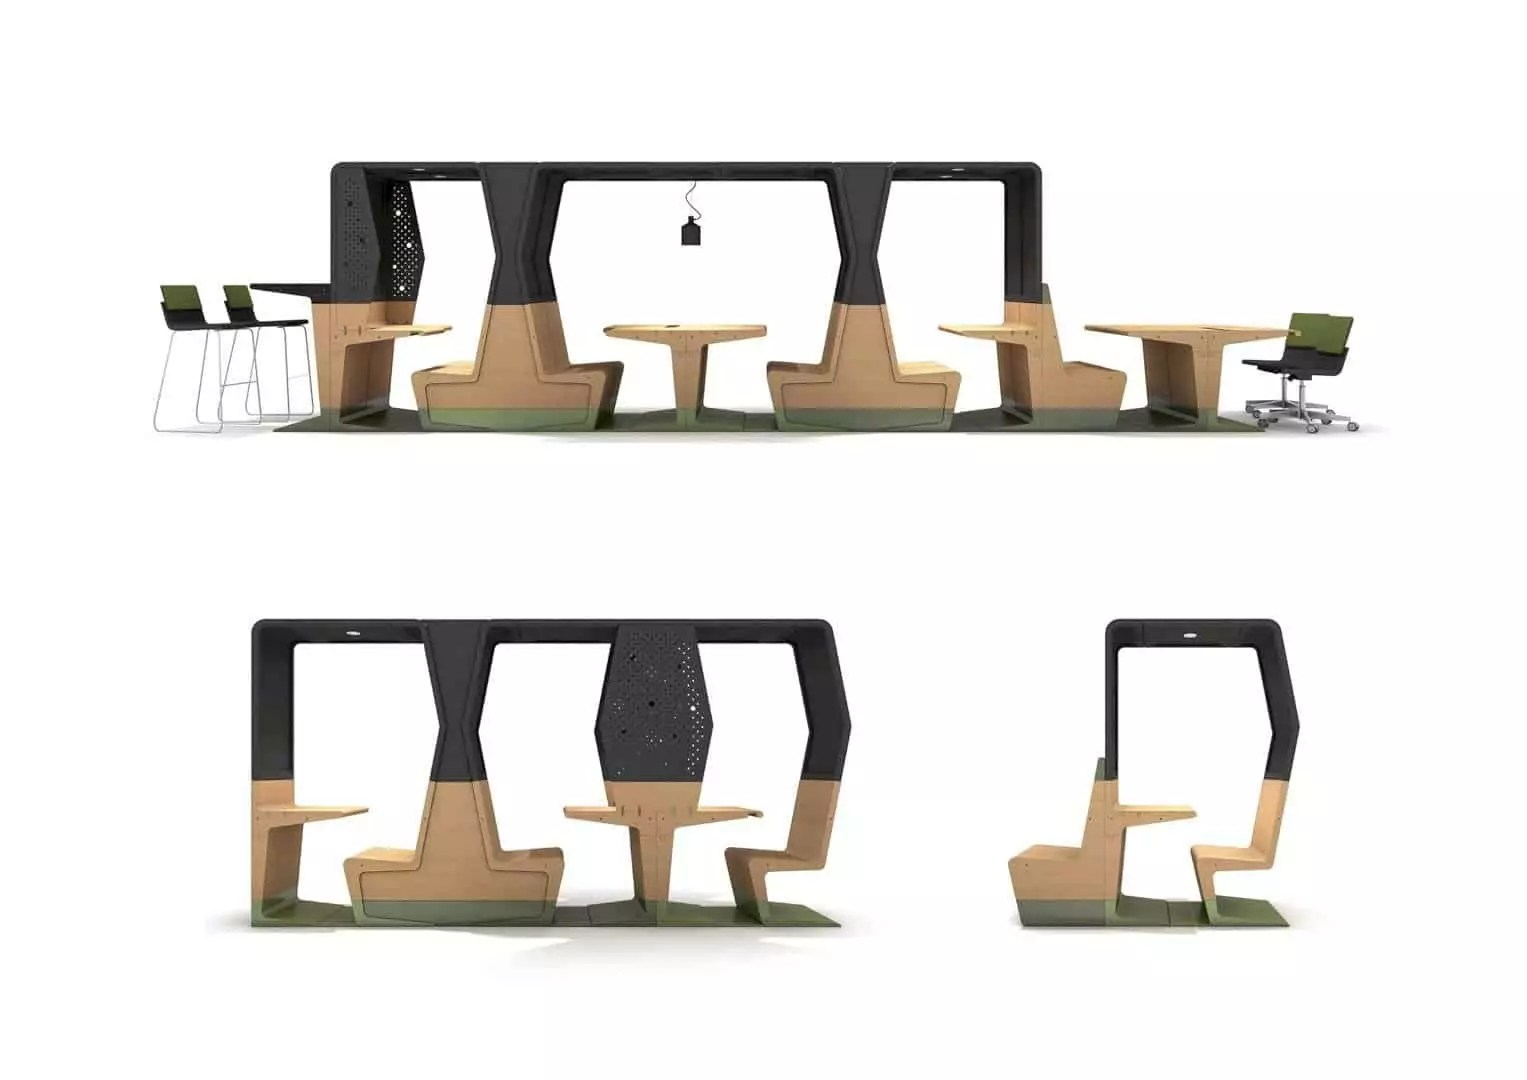 HUBB: An Innovative Modular Furniture Collection for Learning Environments